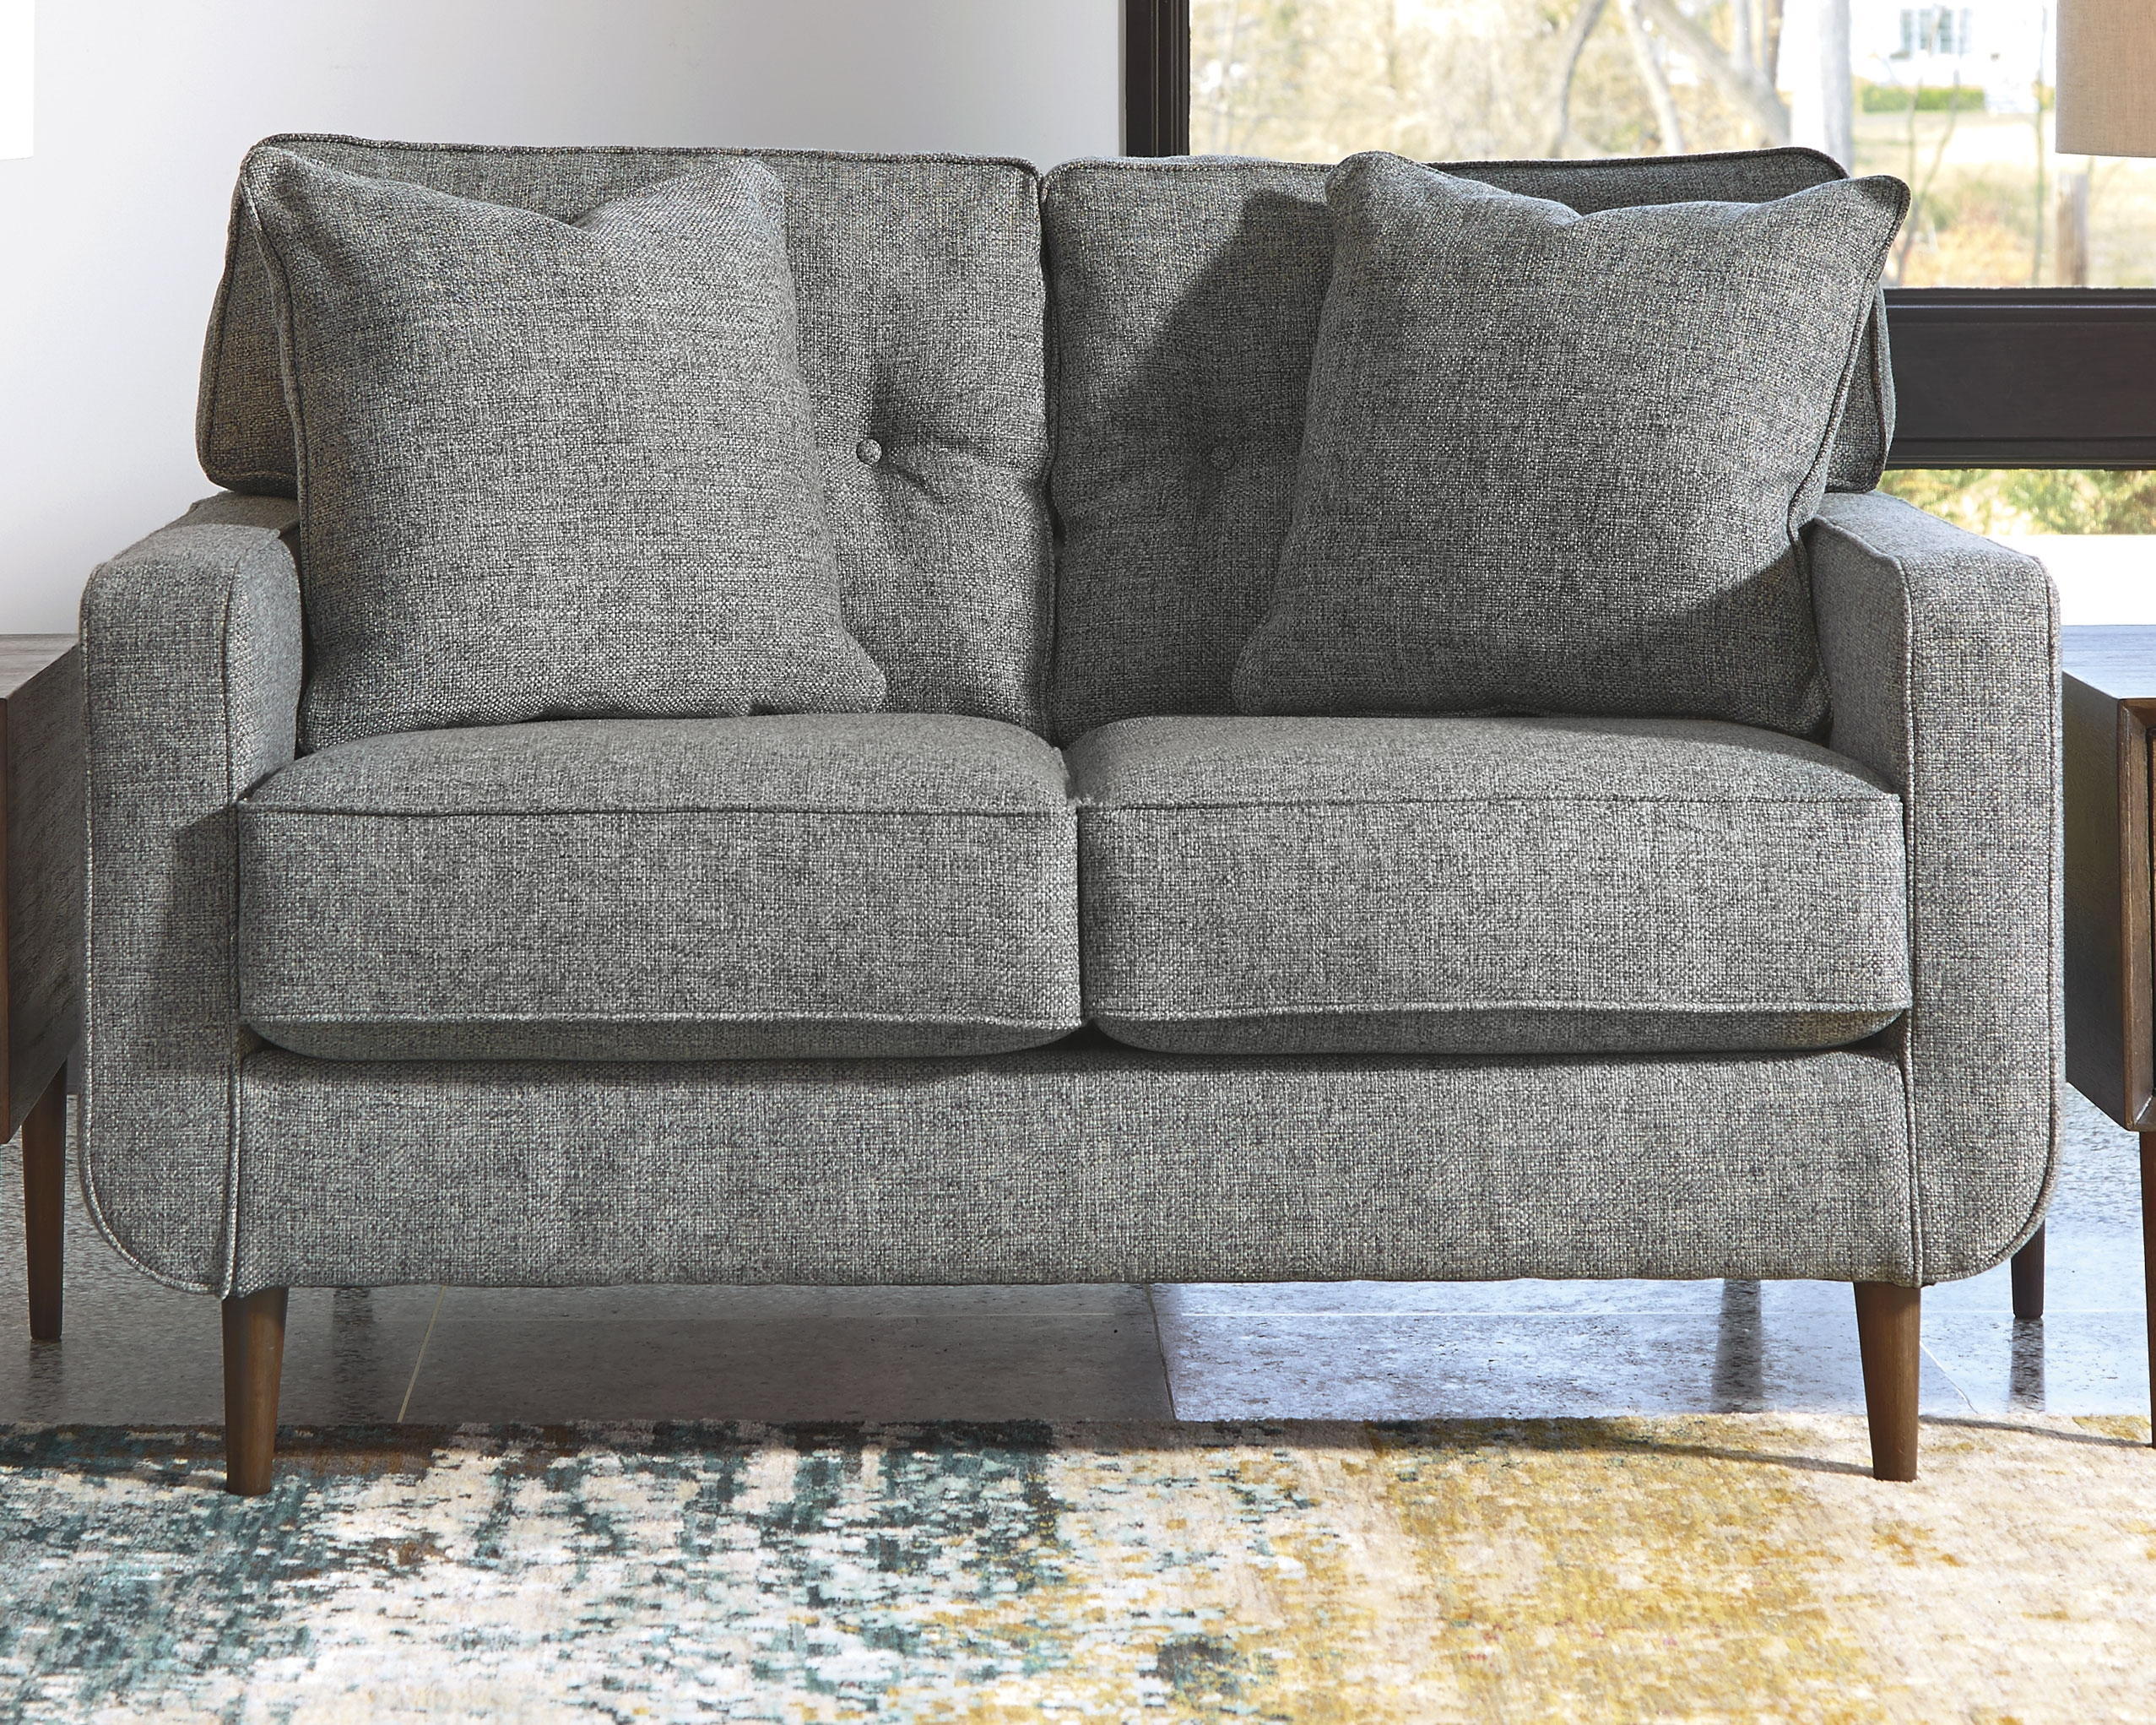 Zardoni Loveseat Charcoal Furniture Furniture Decor